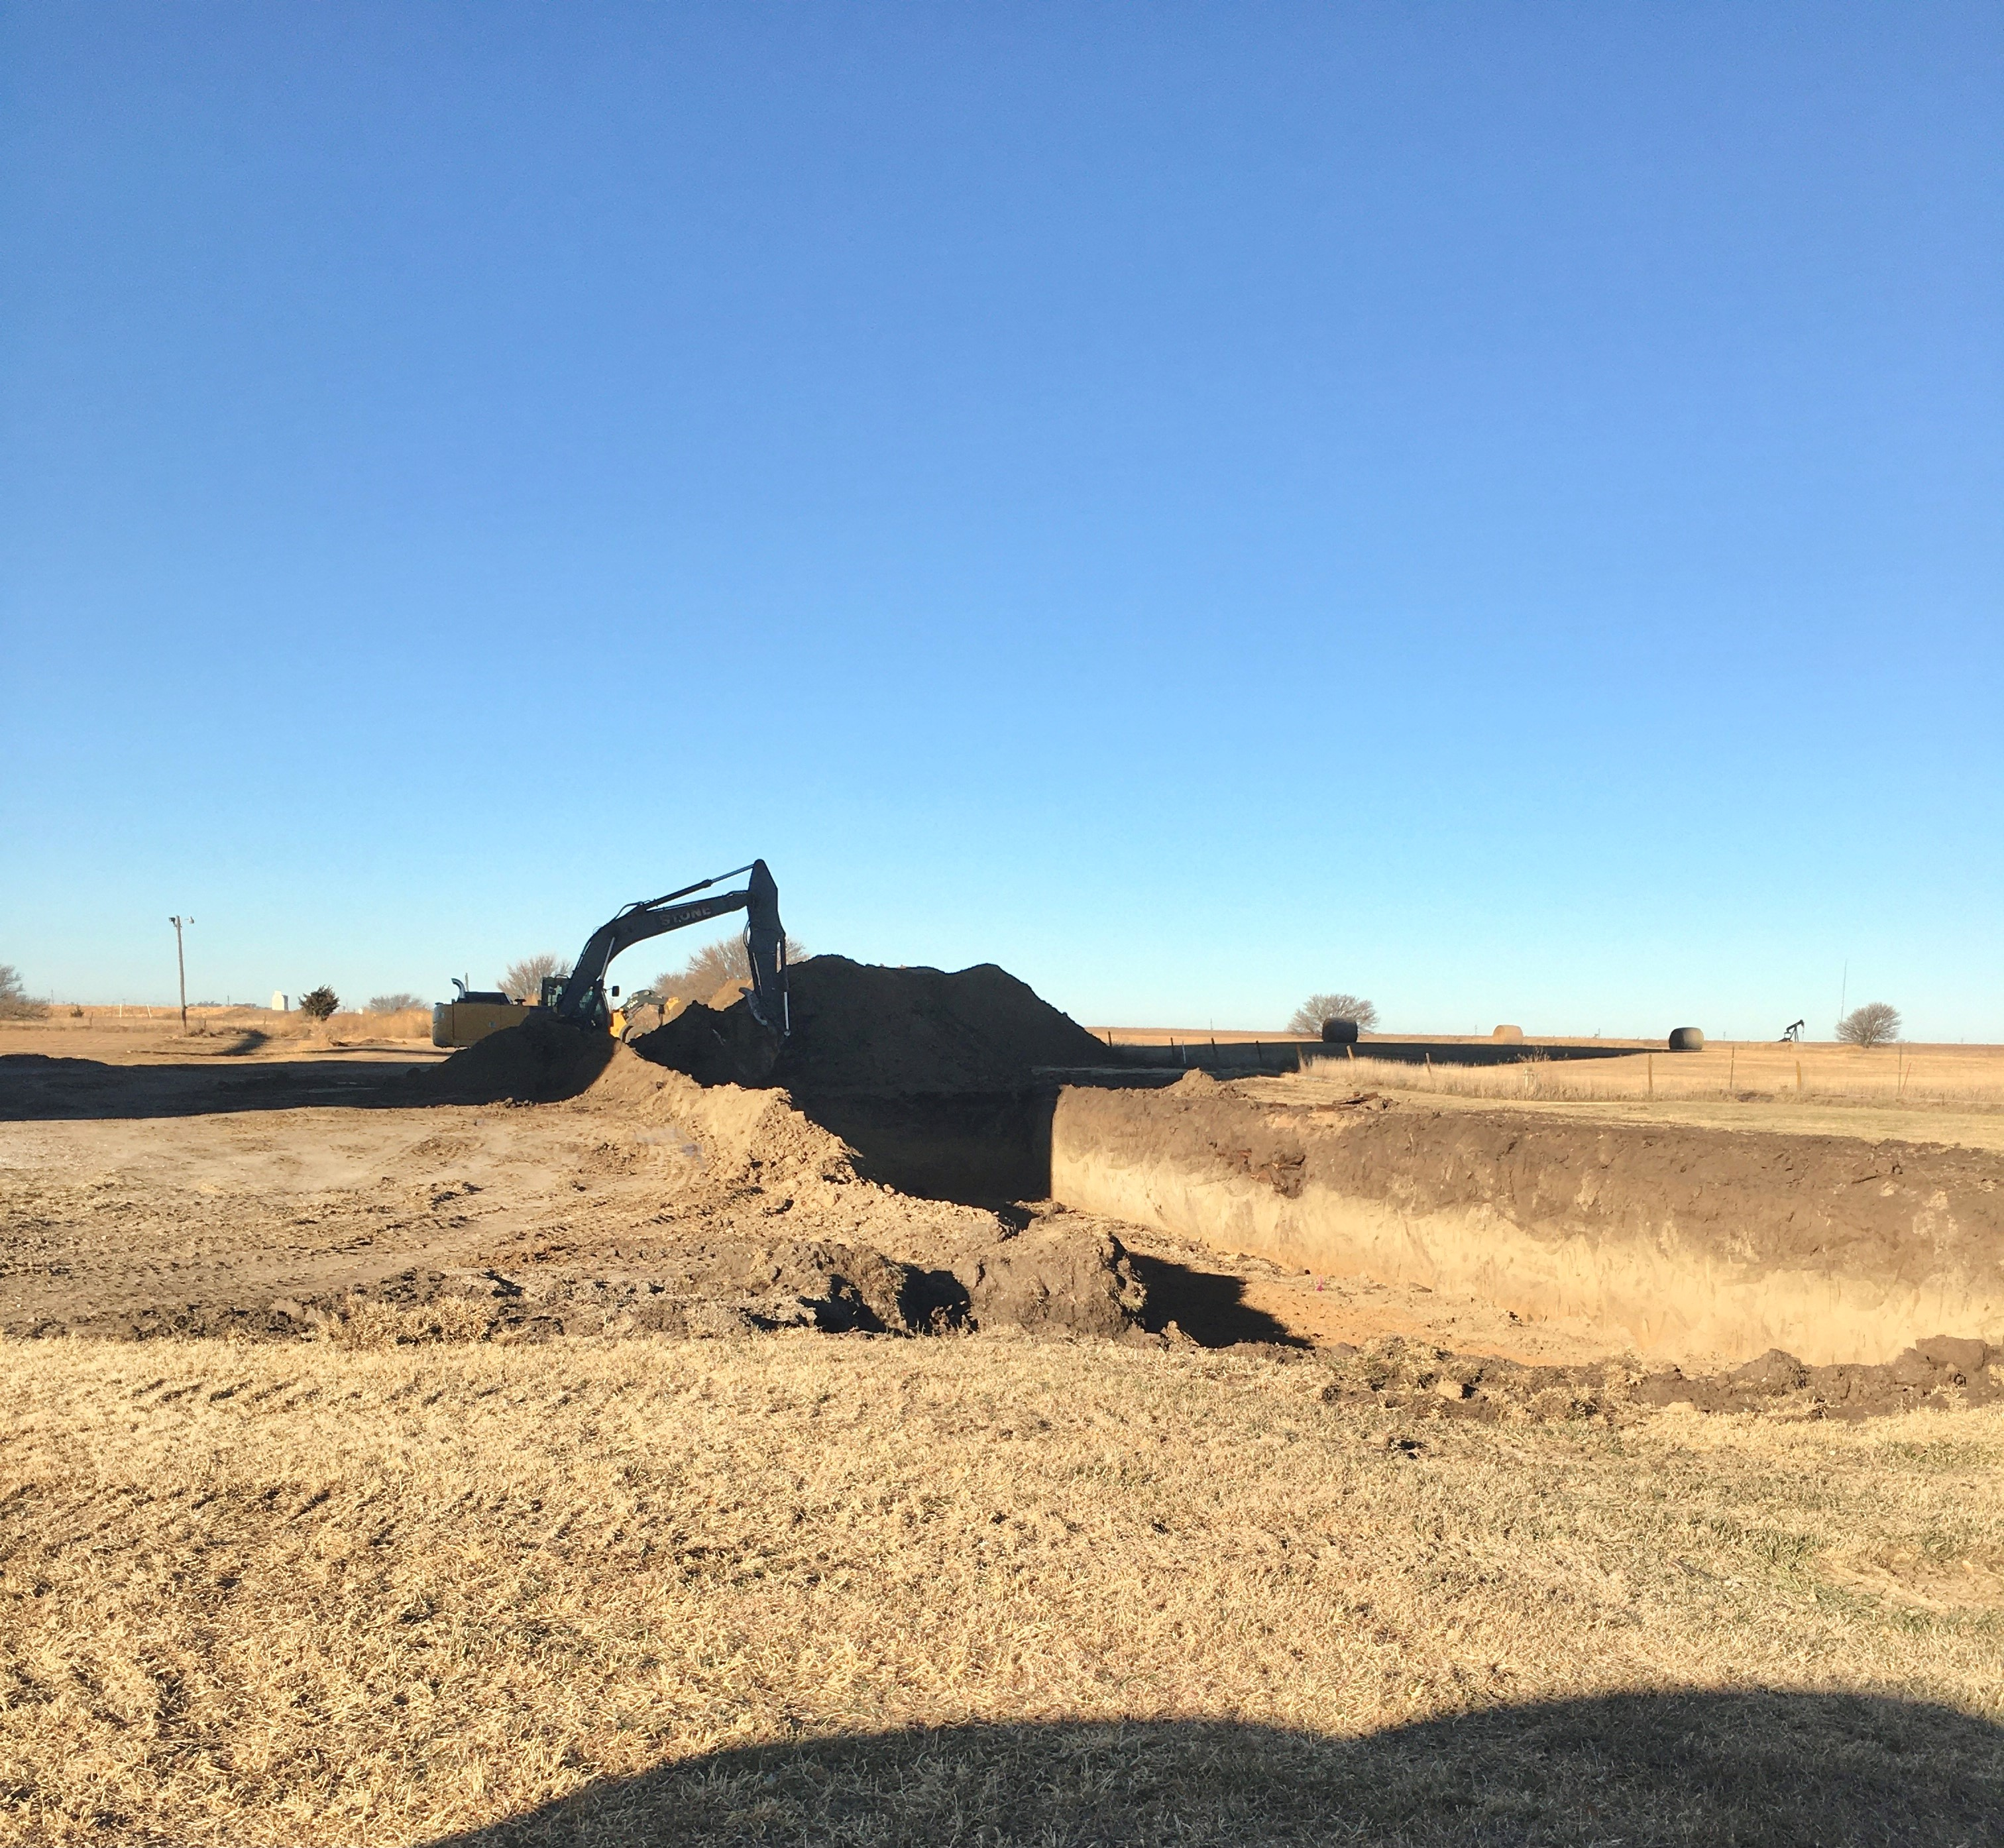 Home Grain Fertilizer Energy Sustain Great Bend Co Op Great bend coop assoc is a food production company based out of 224 main st, great bend, kansas, united states. great bend co op